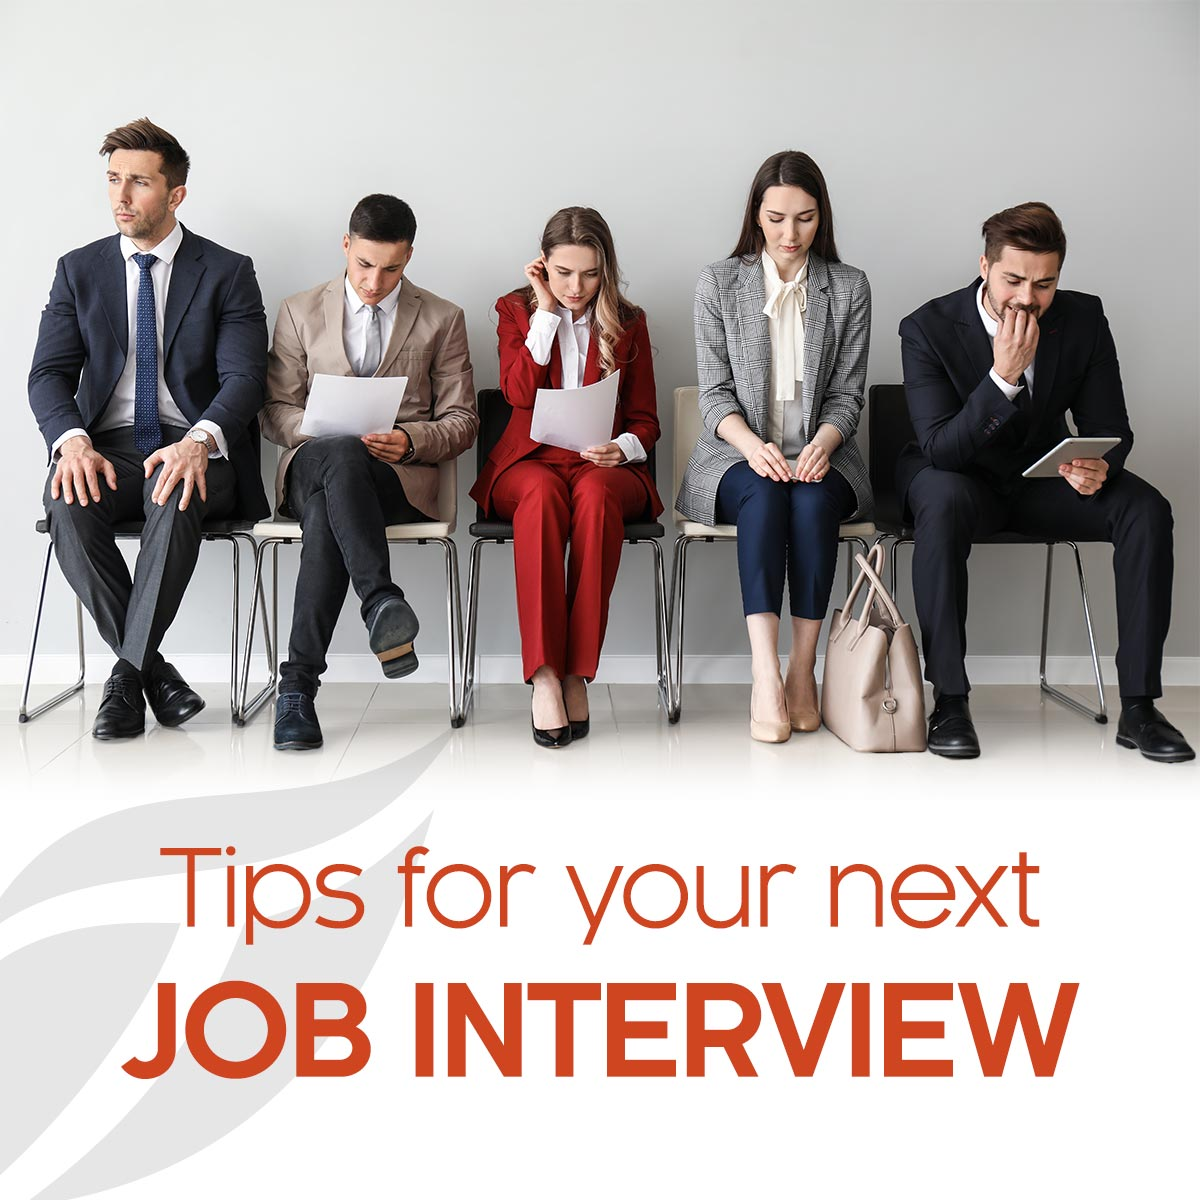 6 Tips to Help You Prepare for an Interview